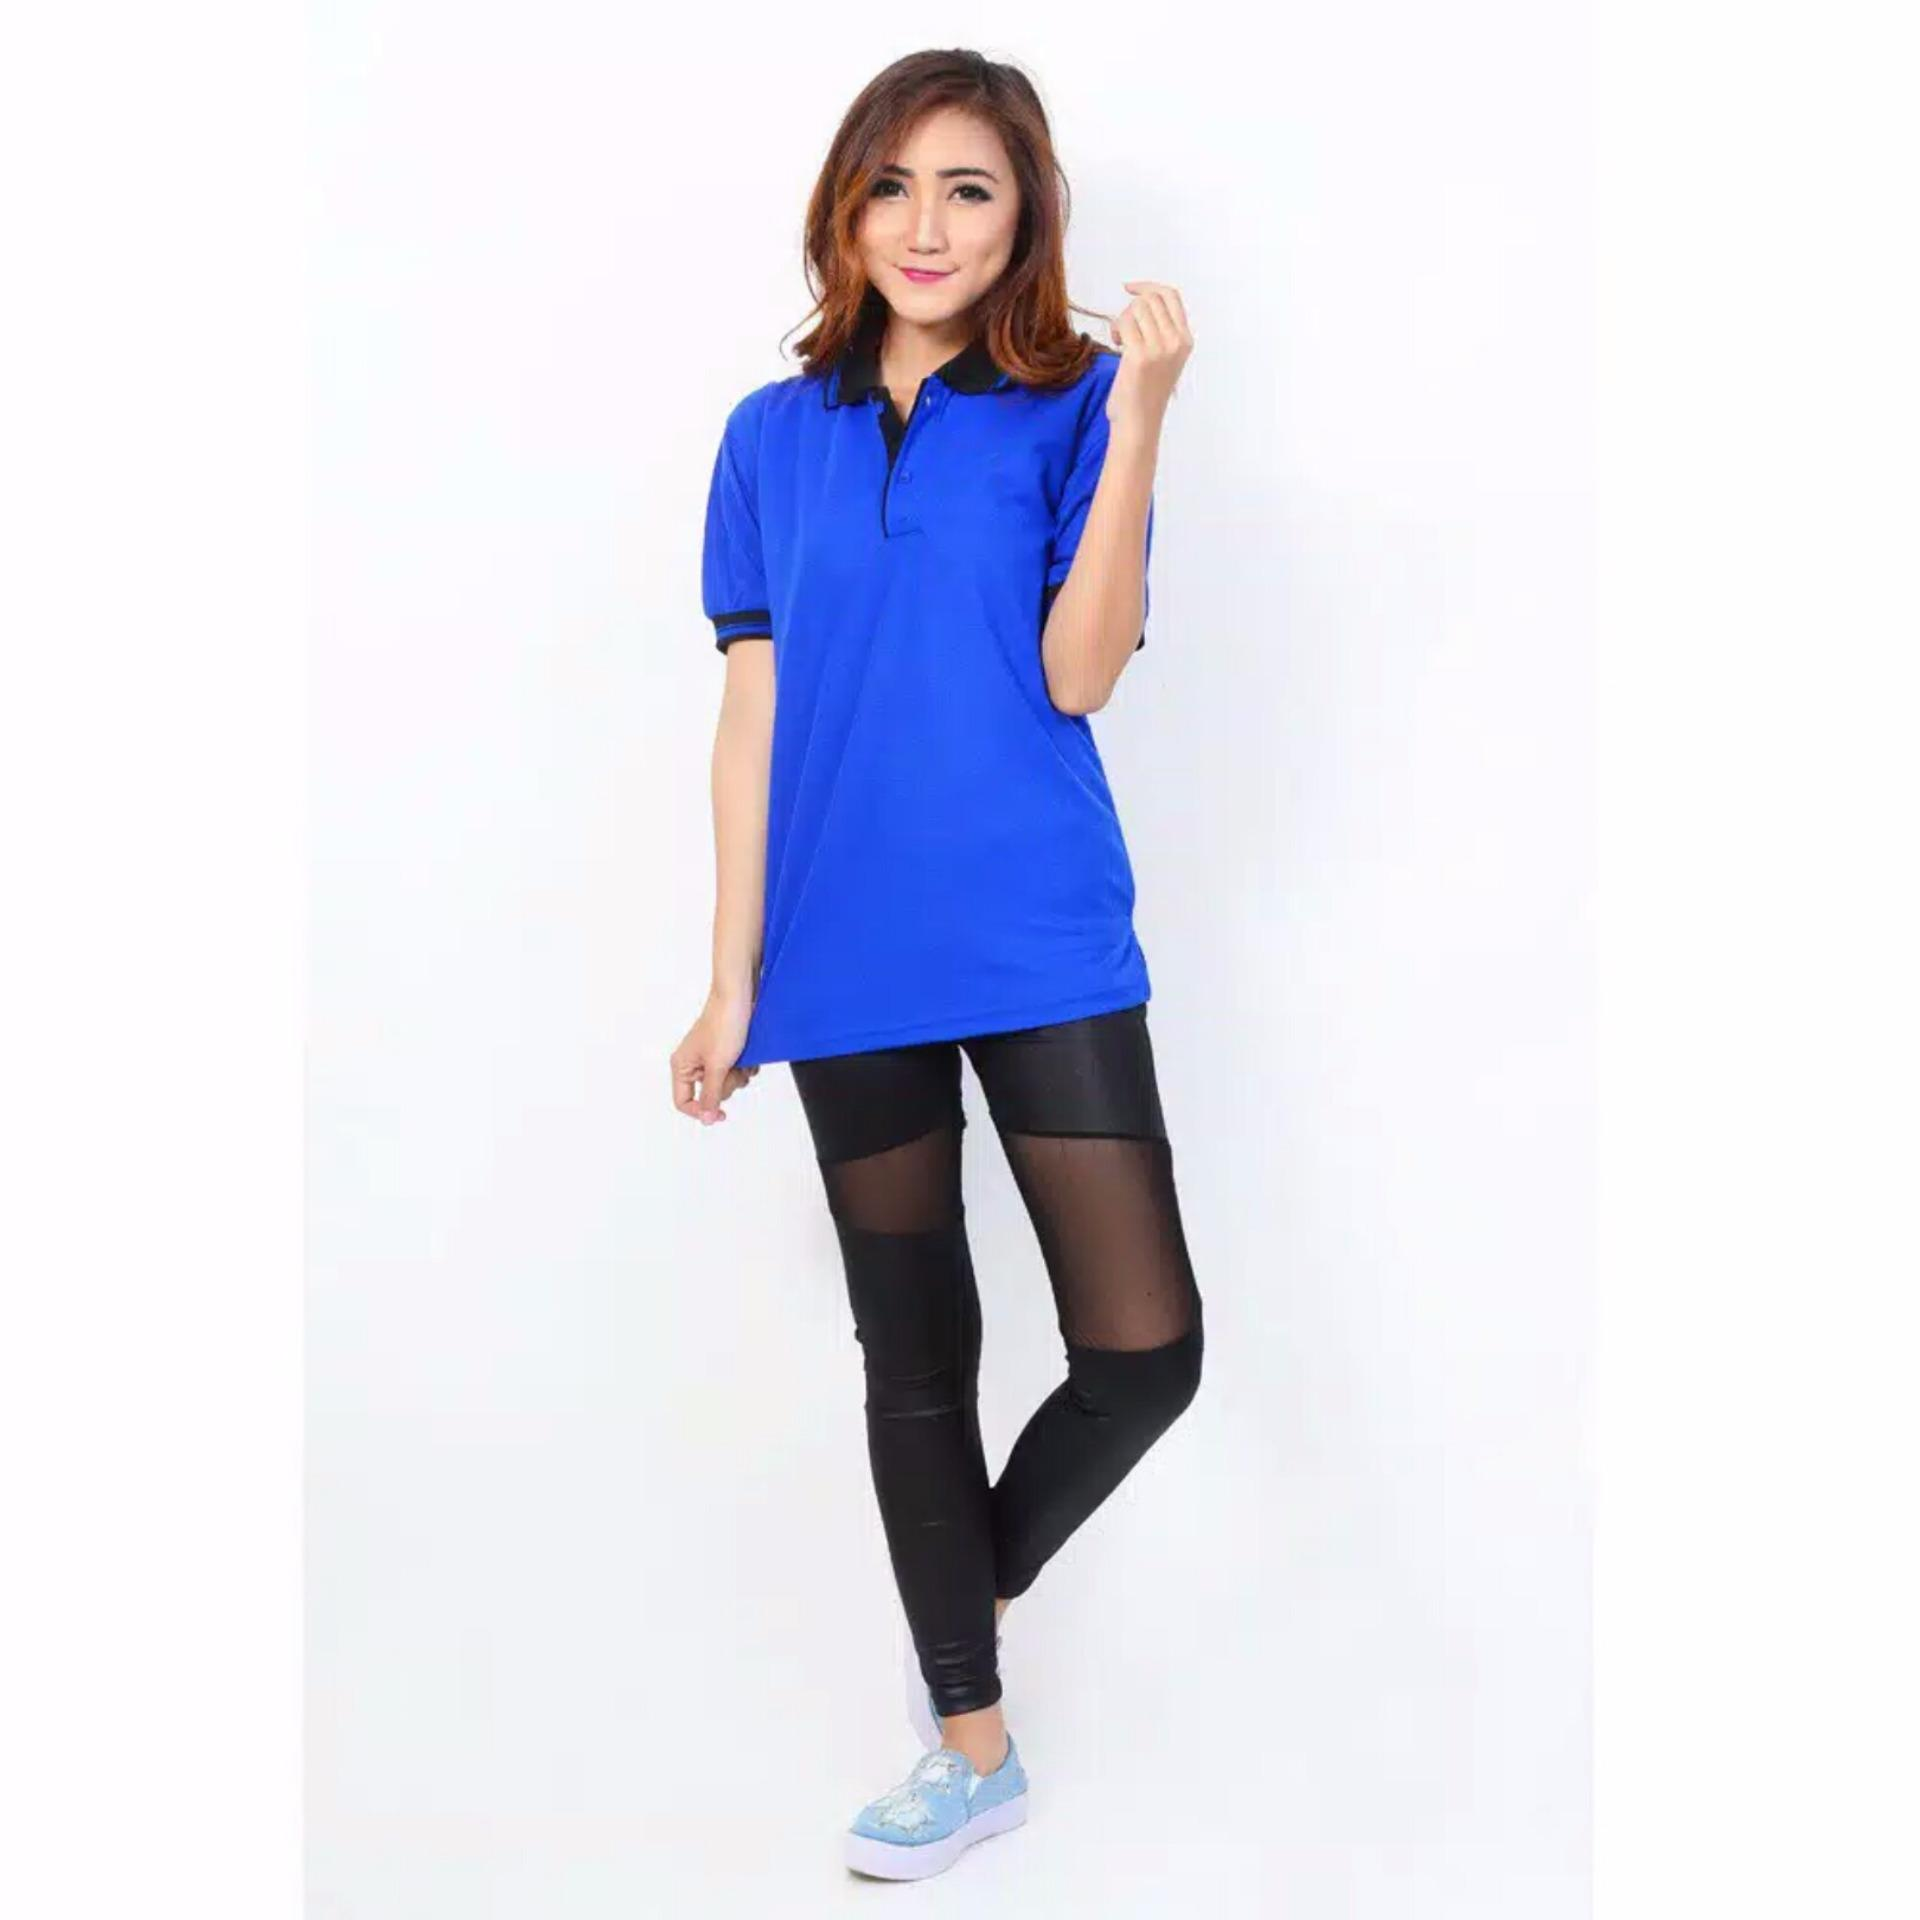 Obral Nosh Fashion Polo Shirt Women M Biru Tua Murah